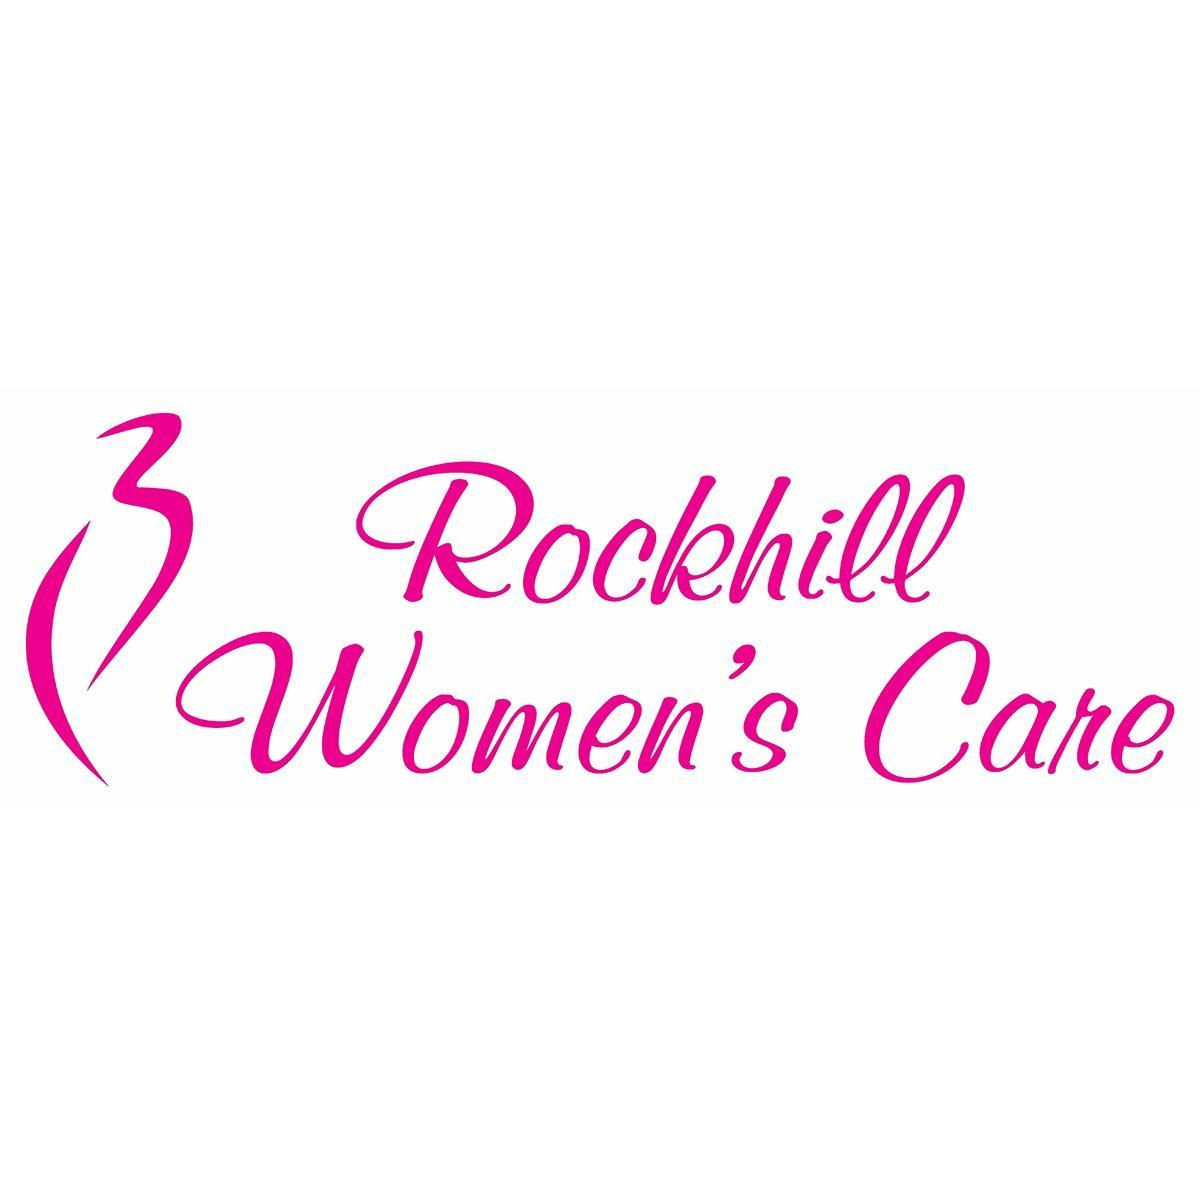 Rockhill Women's Care - Overland Park, KS - Obstetricians & Gynecologists